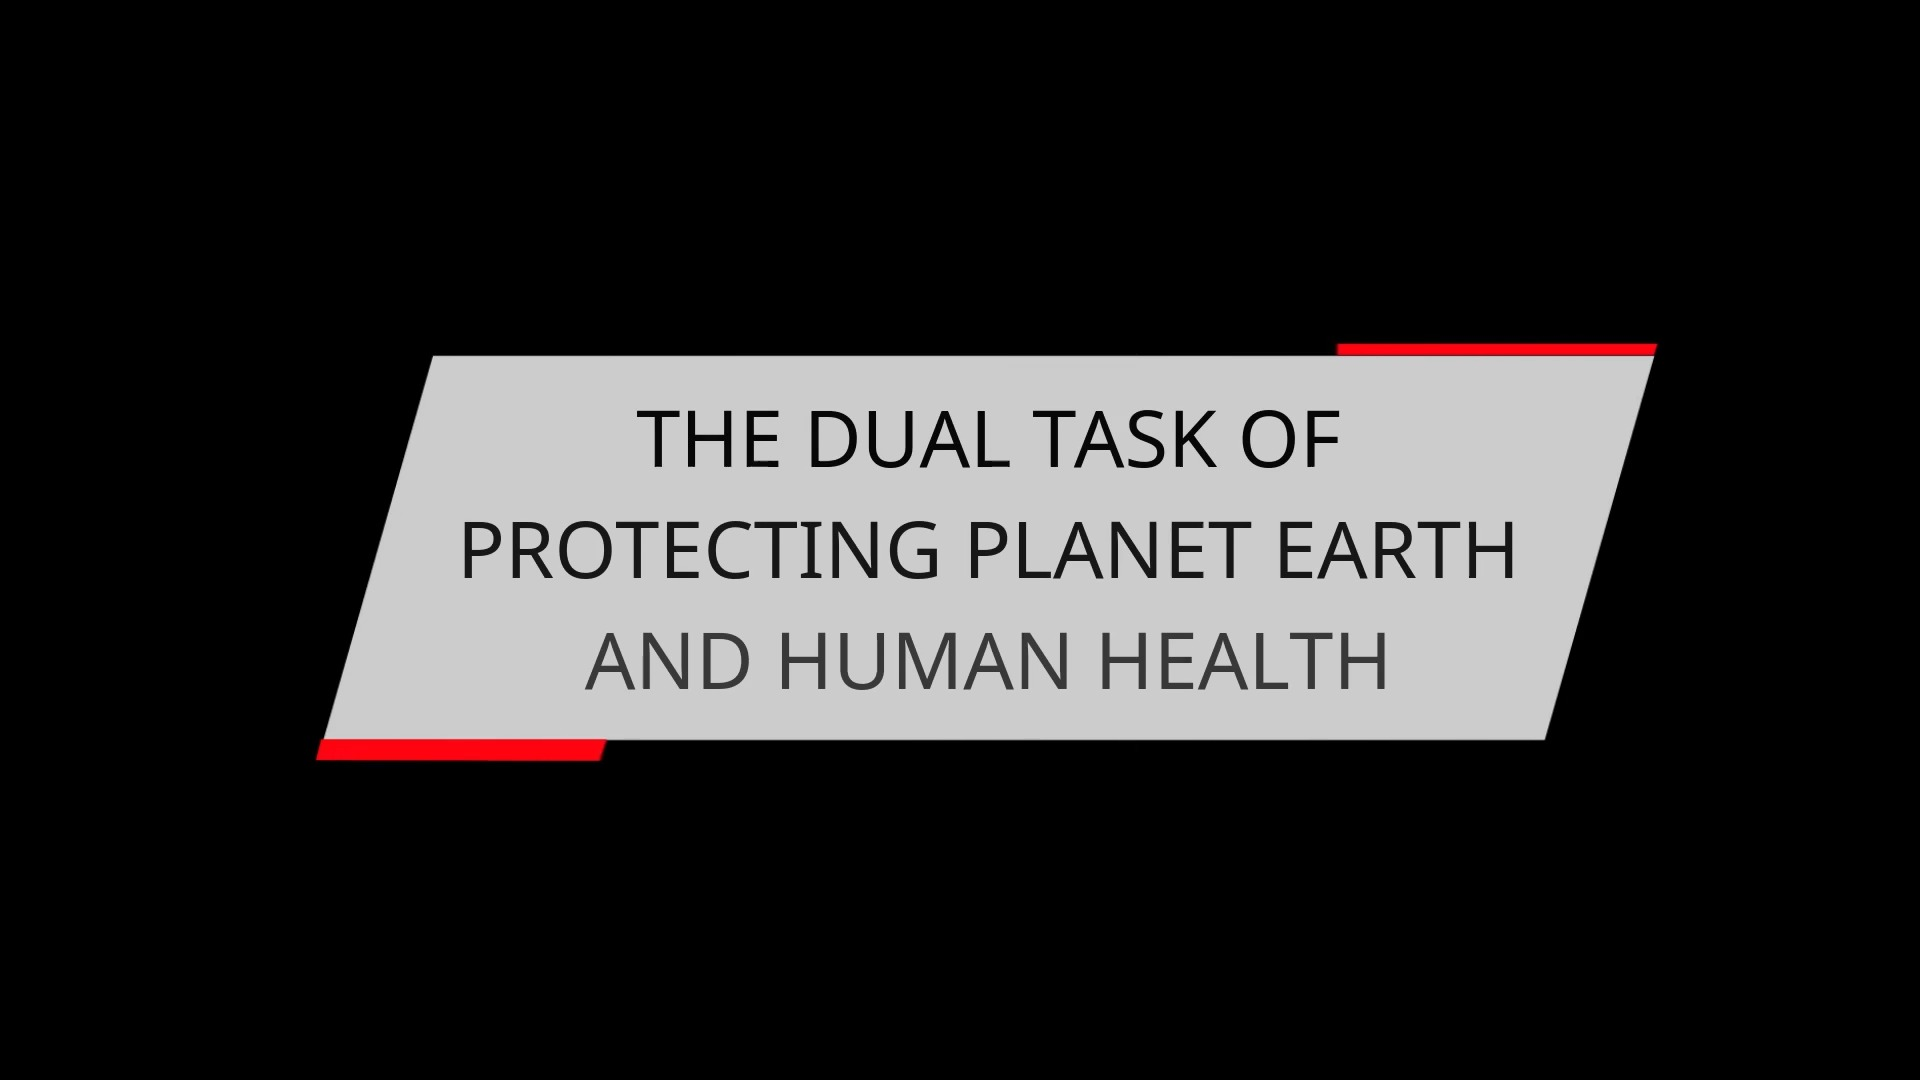 THE DUAL TASK OF PROTECTING PLANET EARTH AND HUMAN HEALTH